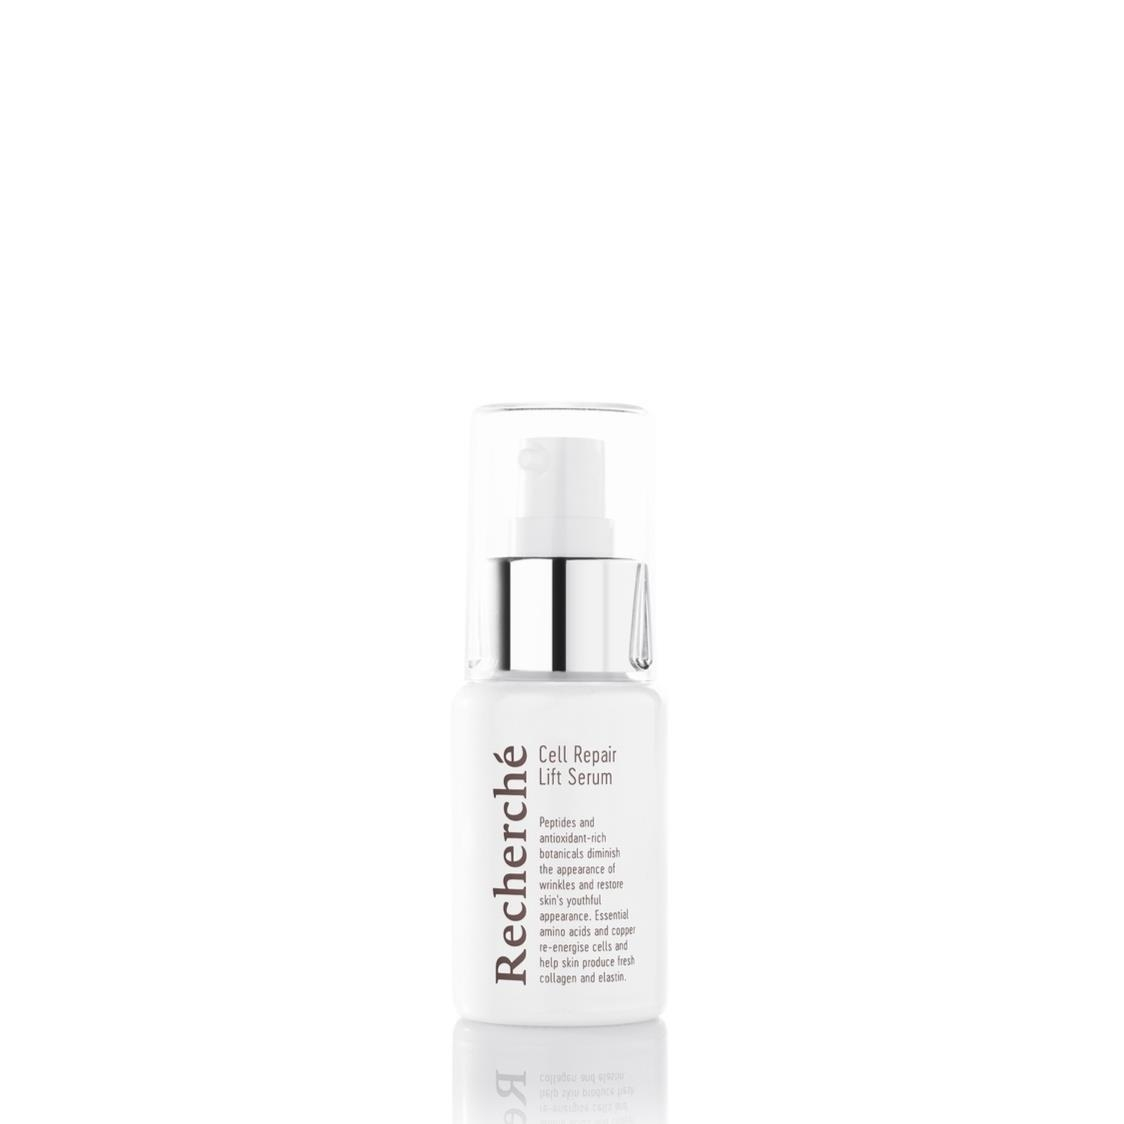 Cell Repair Lift Serum